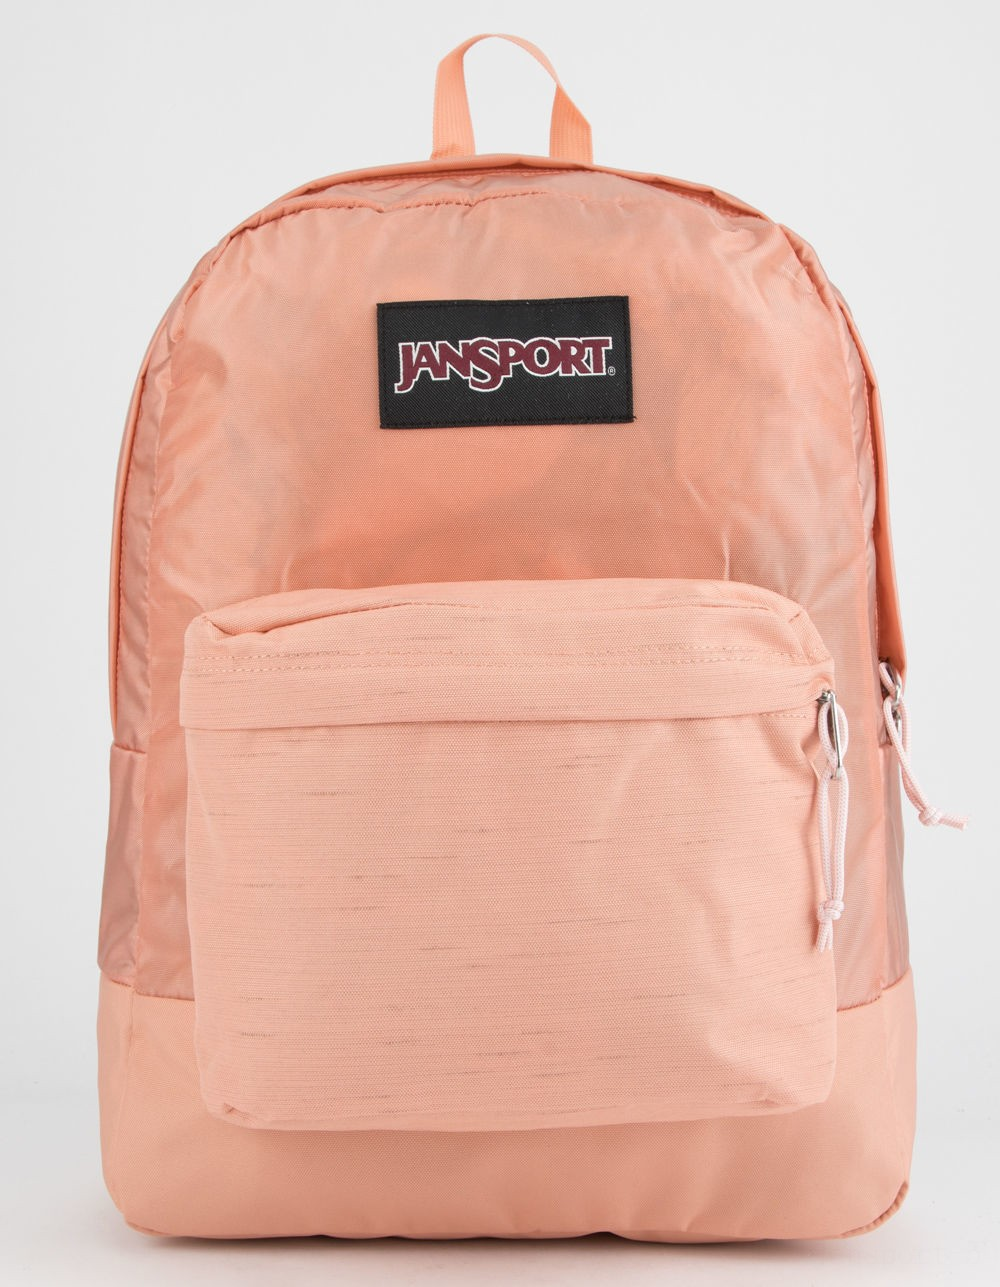 limited sale jansport black label superbreak muted clay backpack pink best price last chance